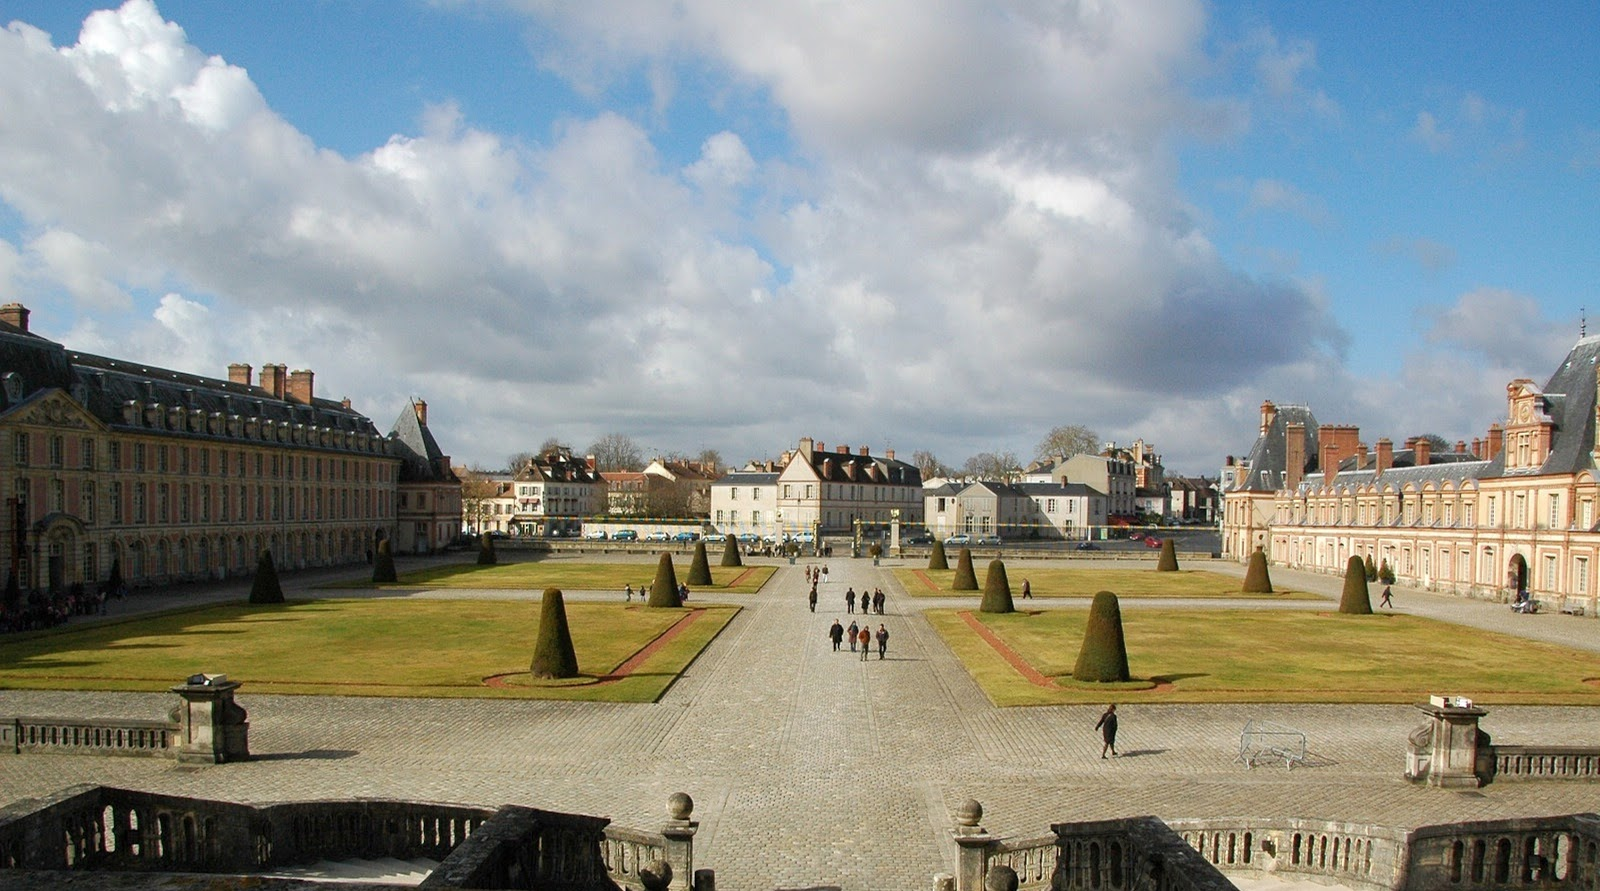 Travel adventures fontainebleau a voyage to for Hotel fontainebleau france